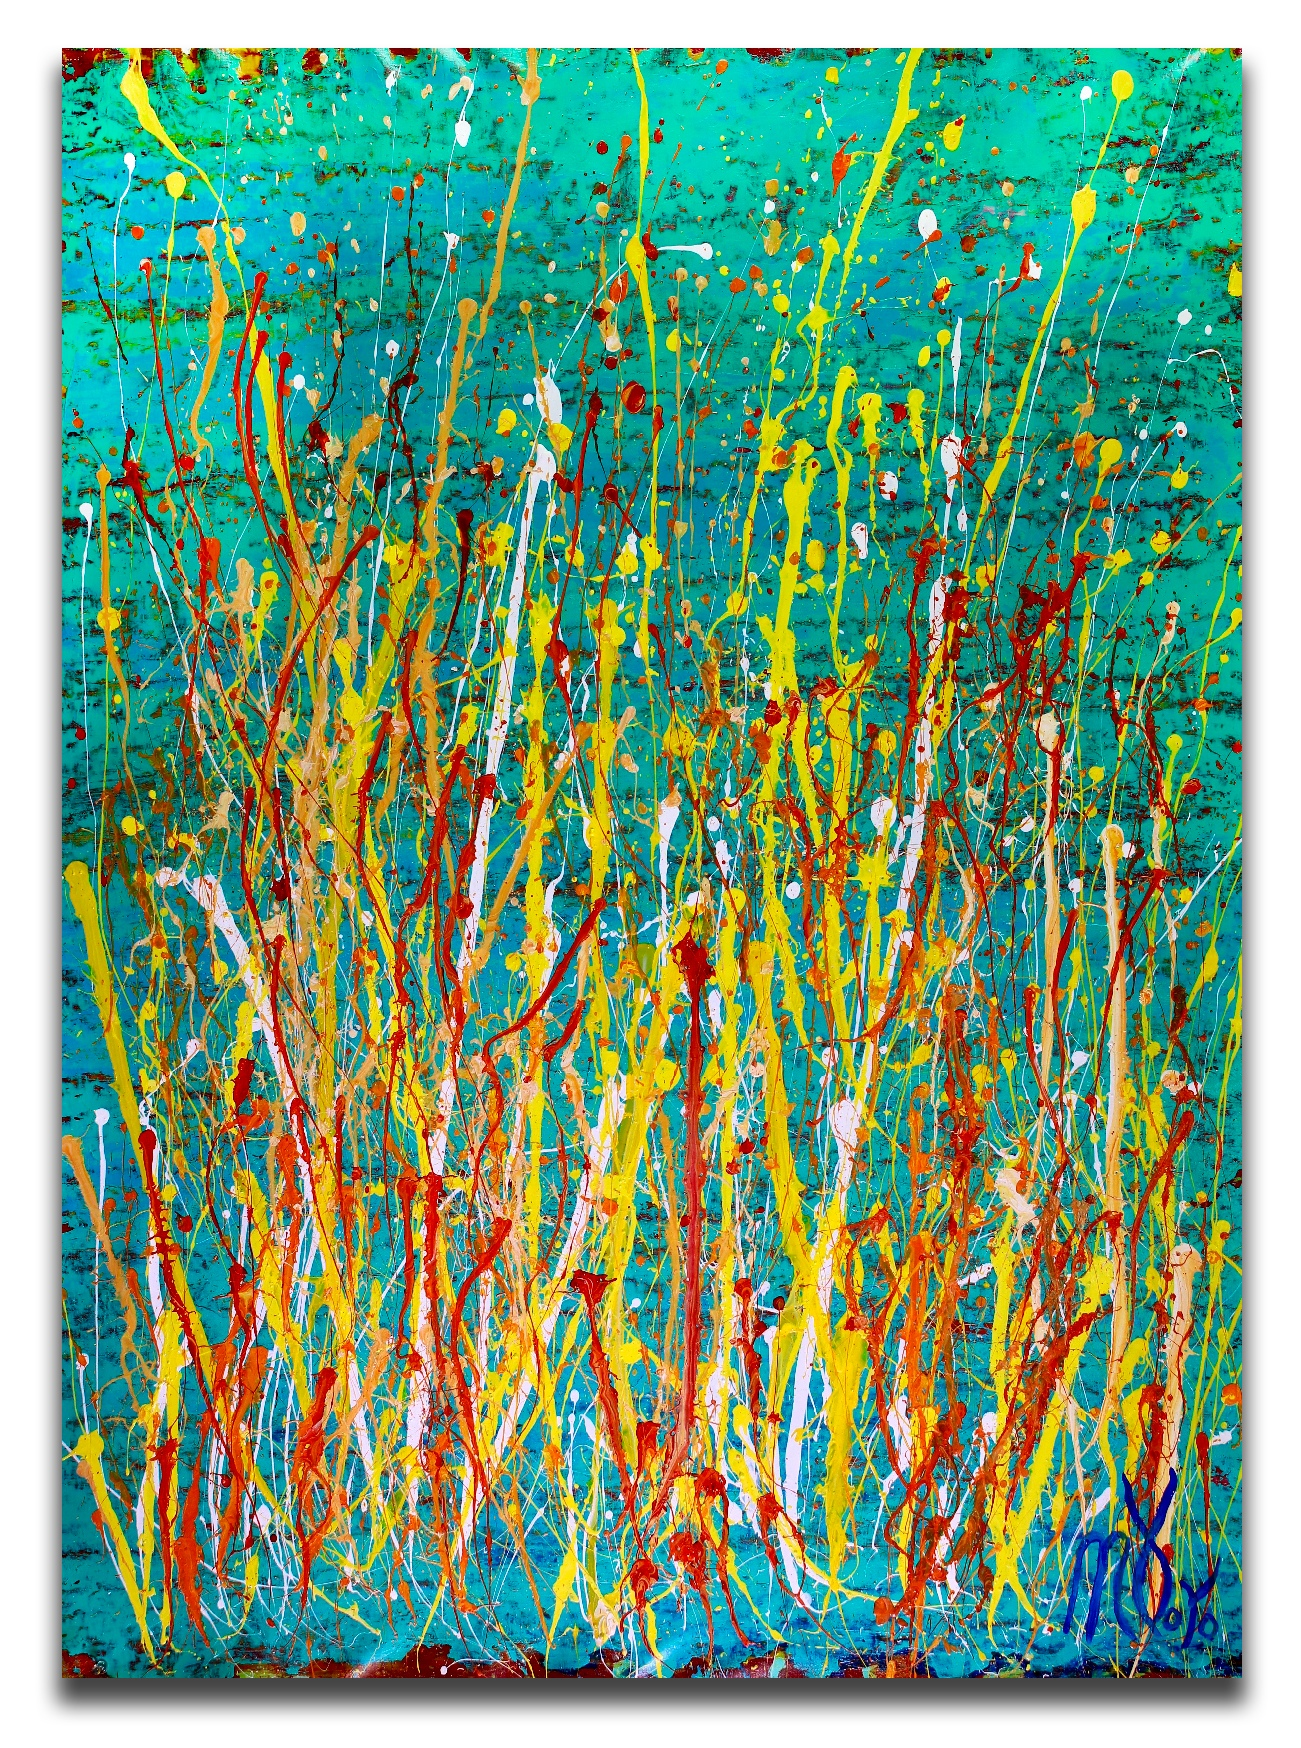 Sold - Drizzles frenzy over aqua green (2018) Abstract Acrylic painting by Nestor Toro